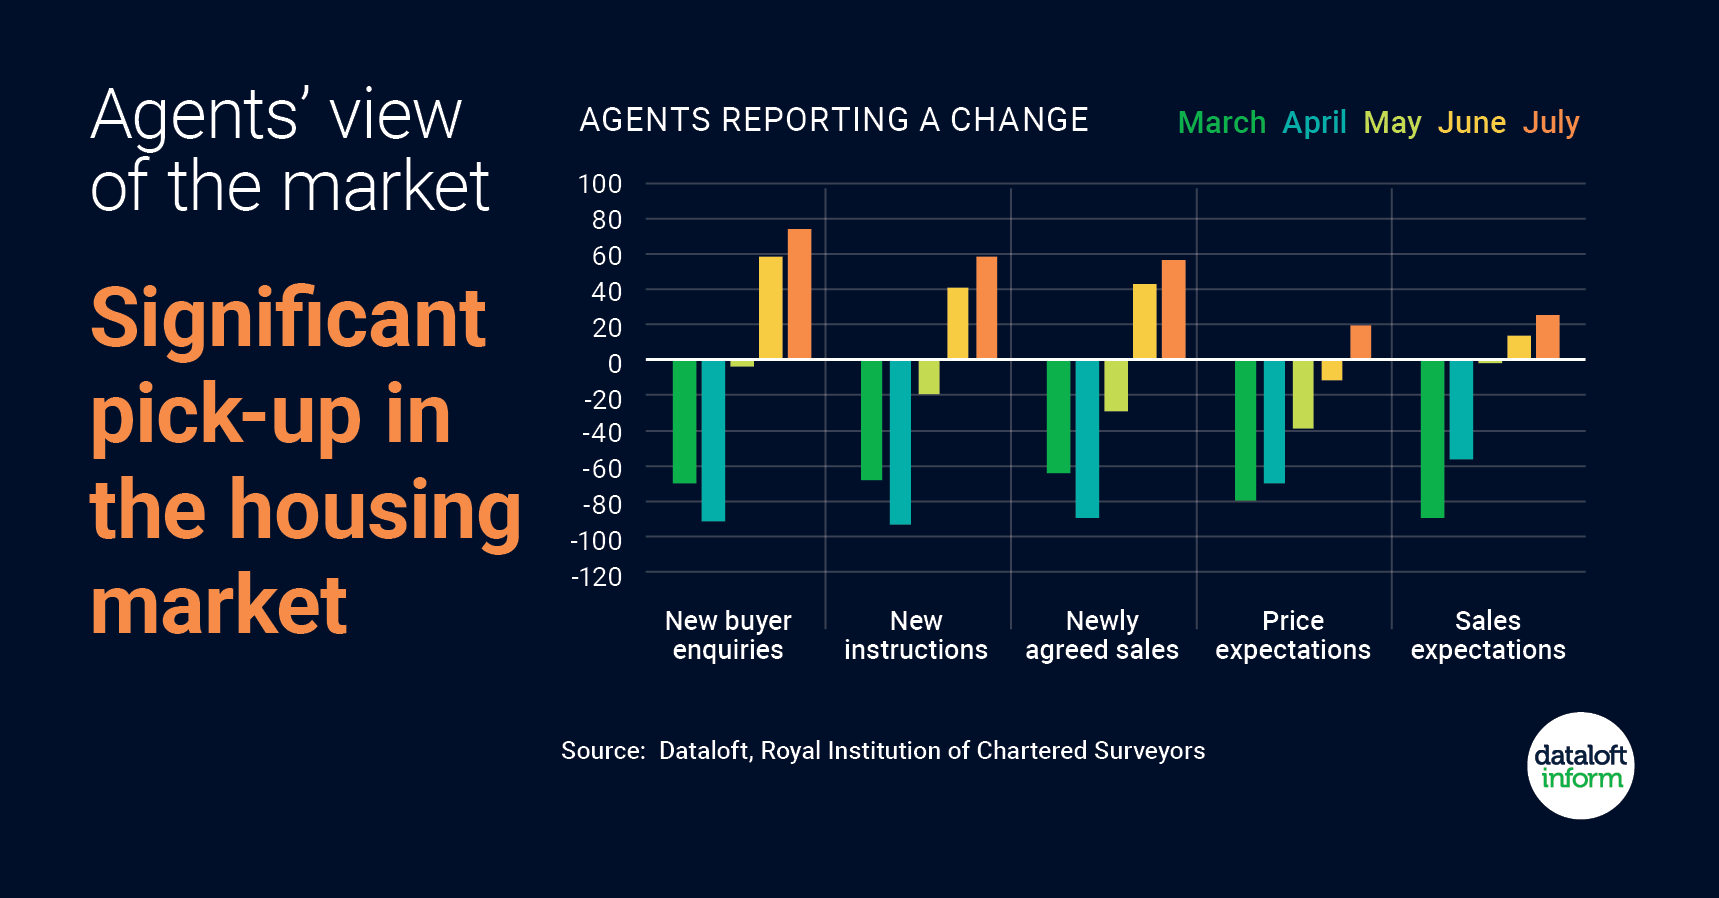 Agents' view of the property market